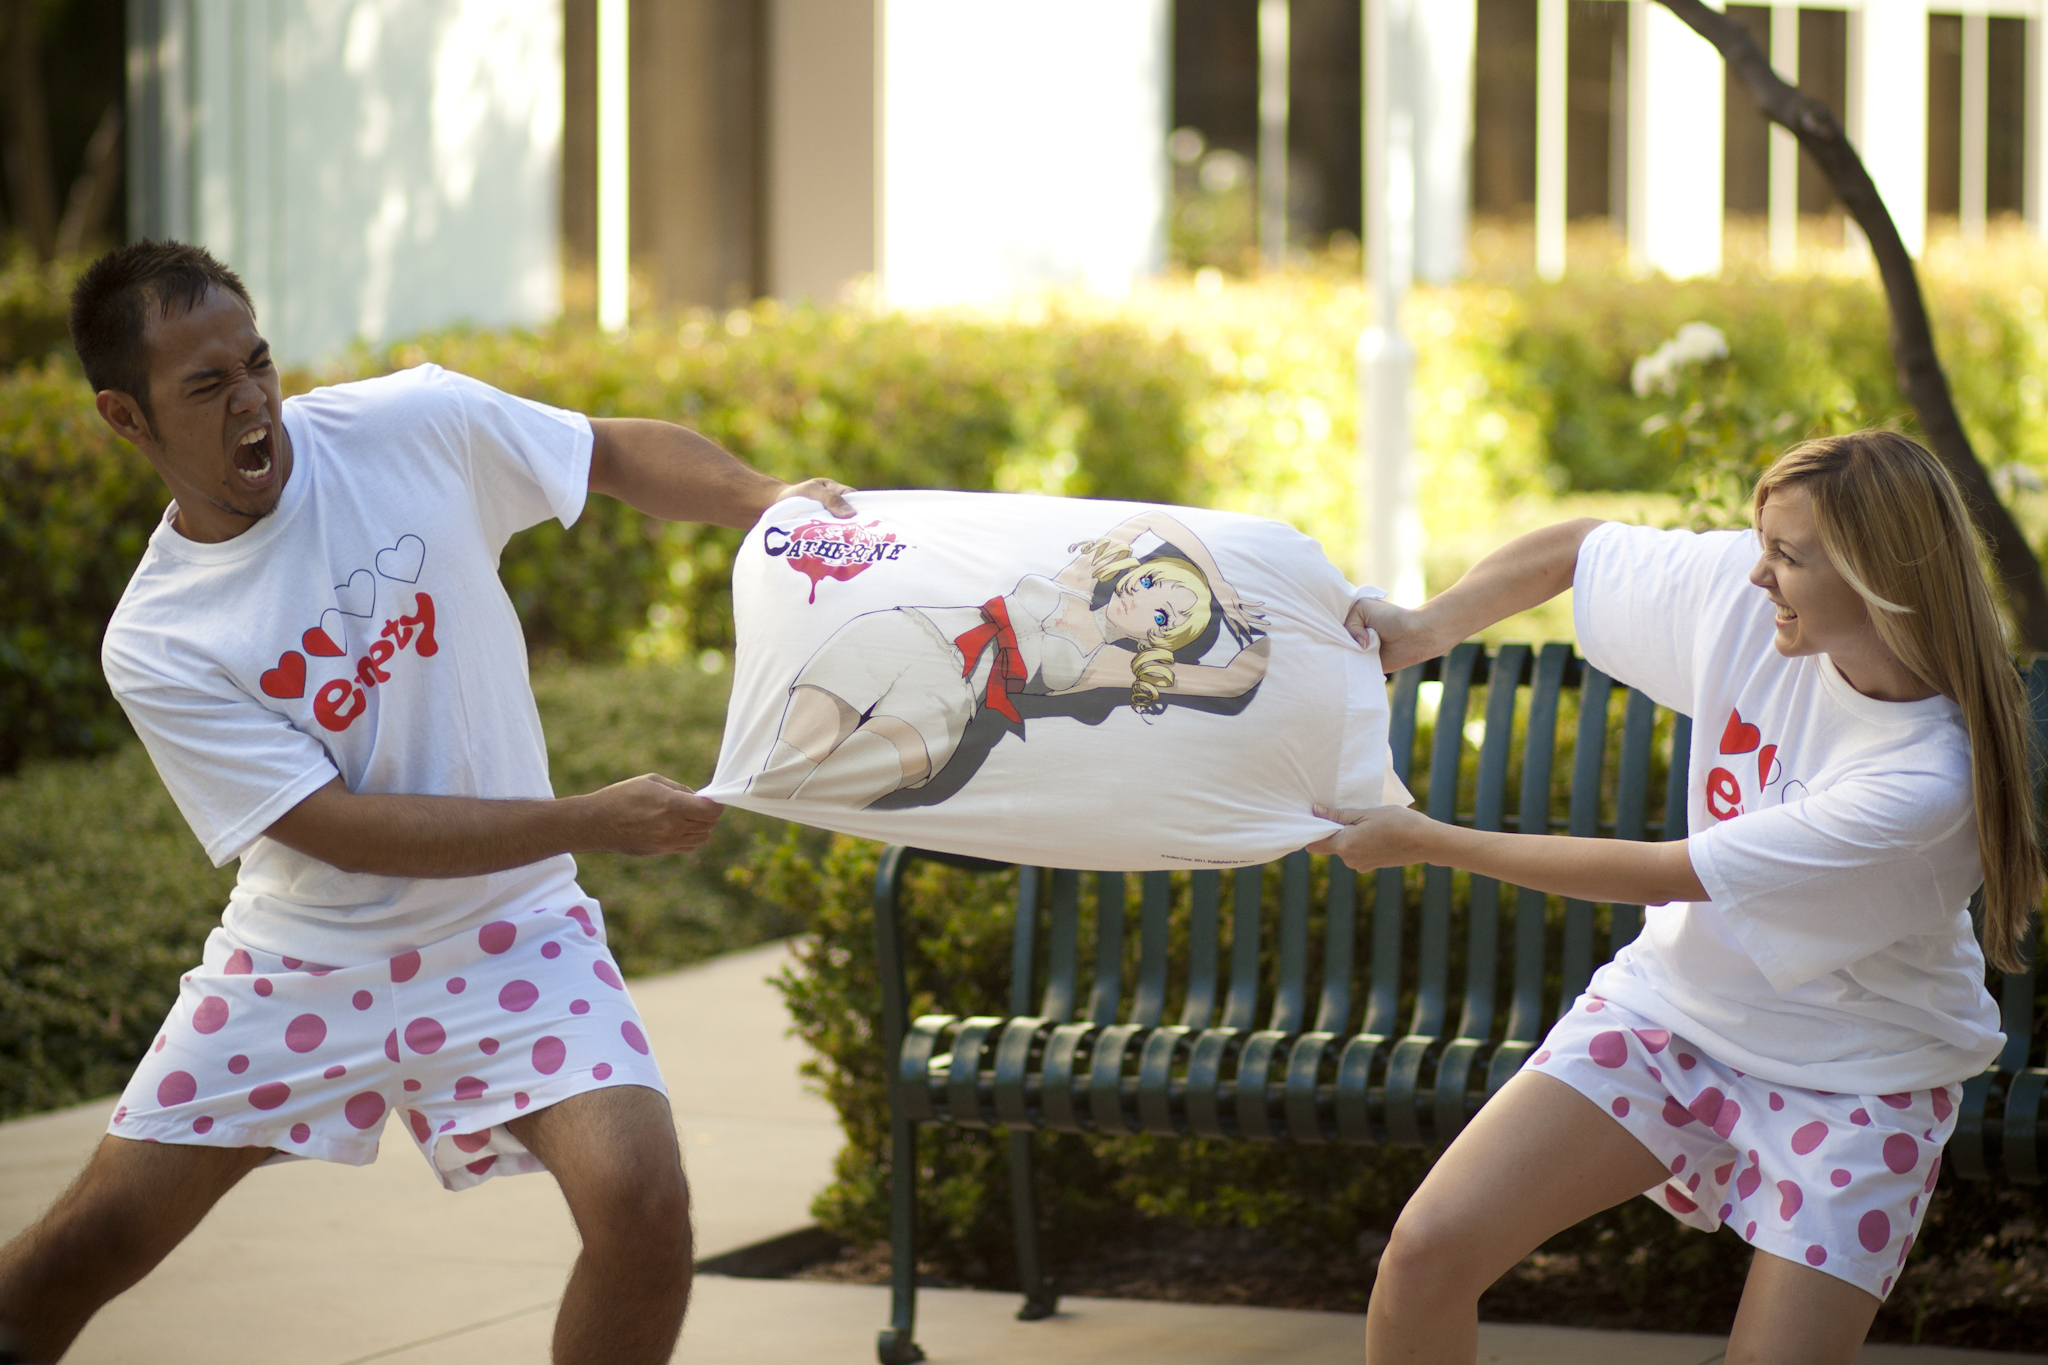 Color image of a black man and a long-haired blonde white woman playing tug-of-war with a Catherine pillow on a sidewalk in front of a green metal park bench. Both are wearing 'Empty Hearts' T-shirts and pink polka-dot boxers.